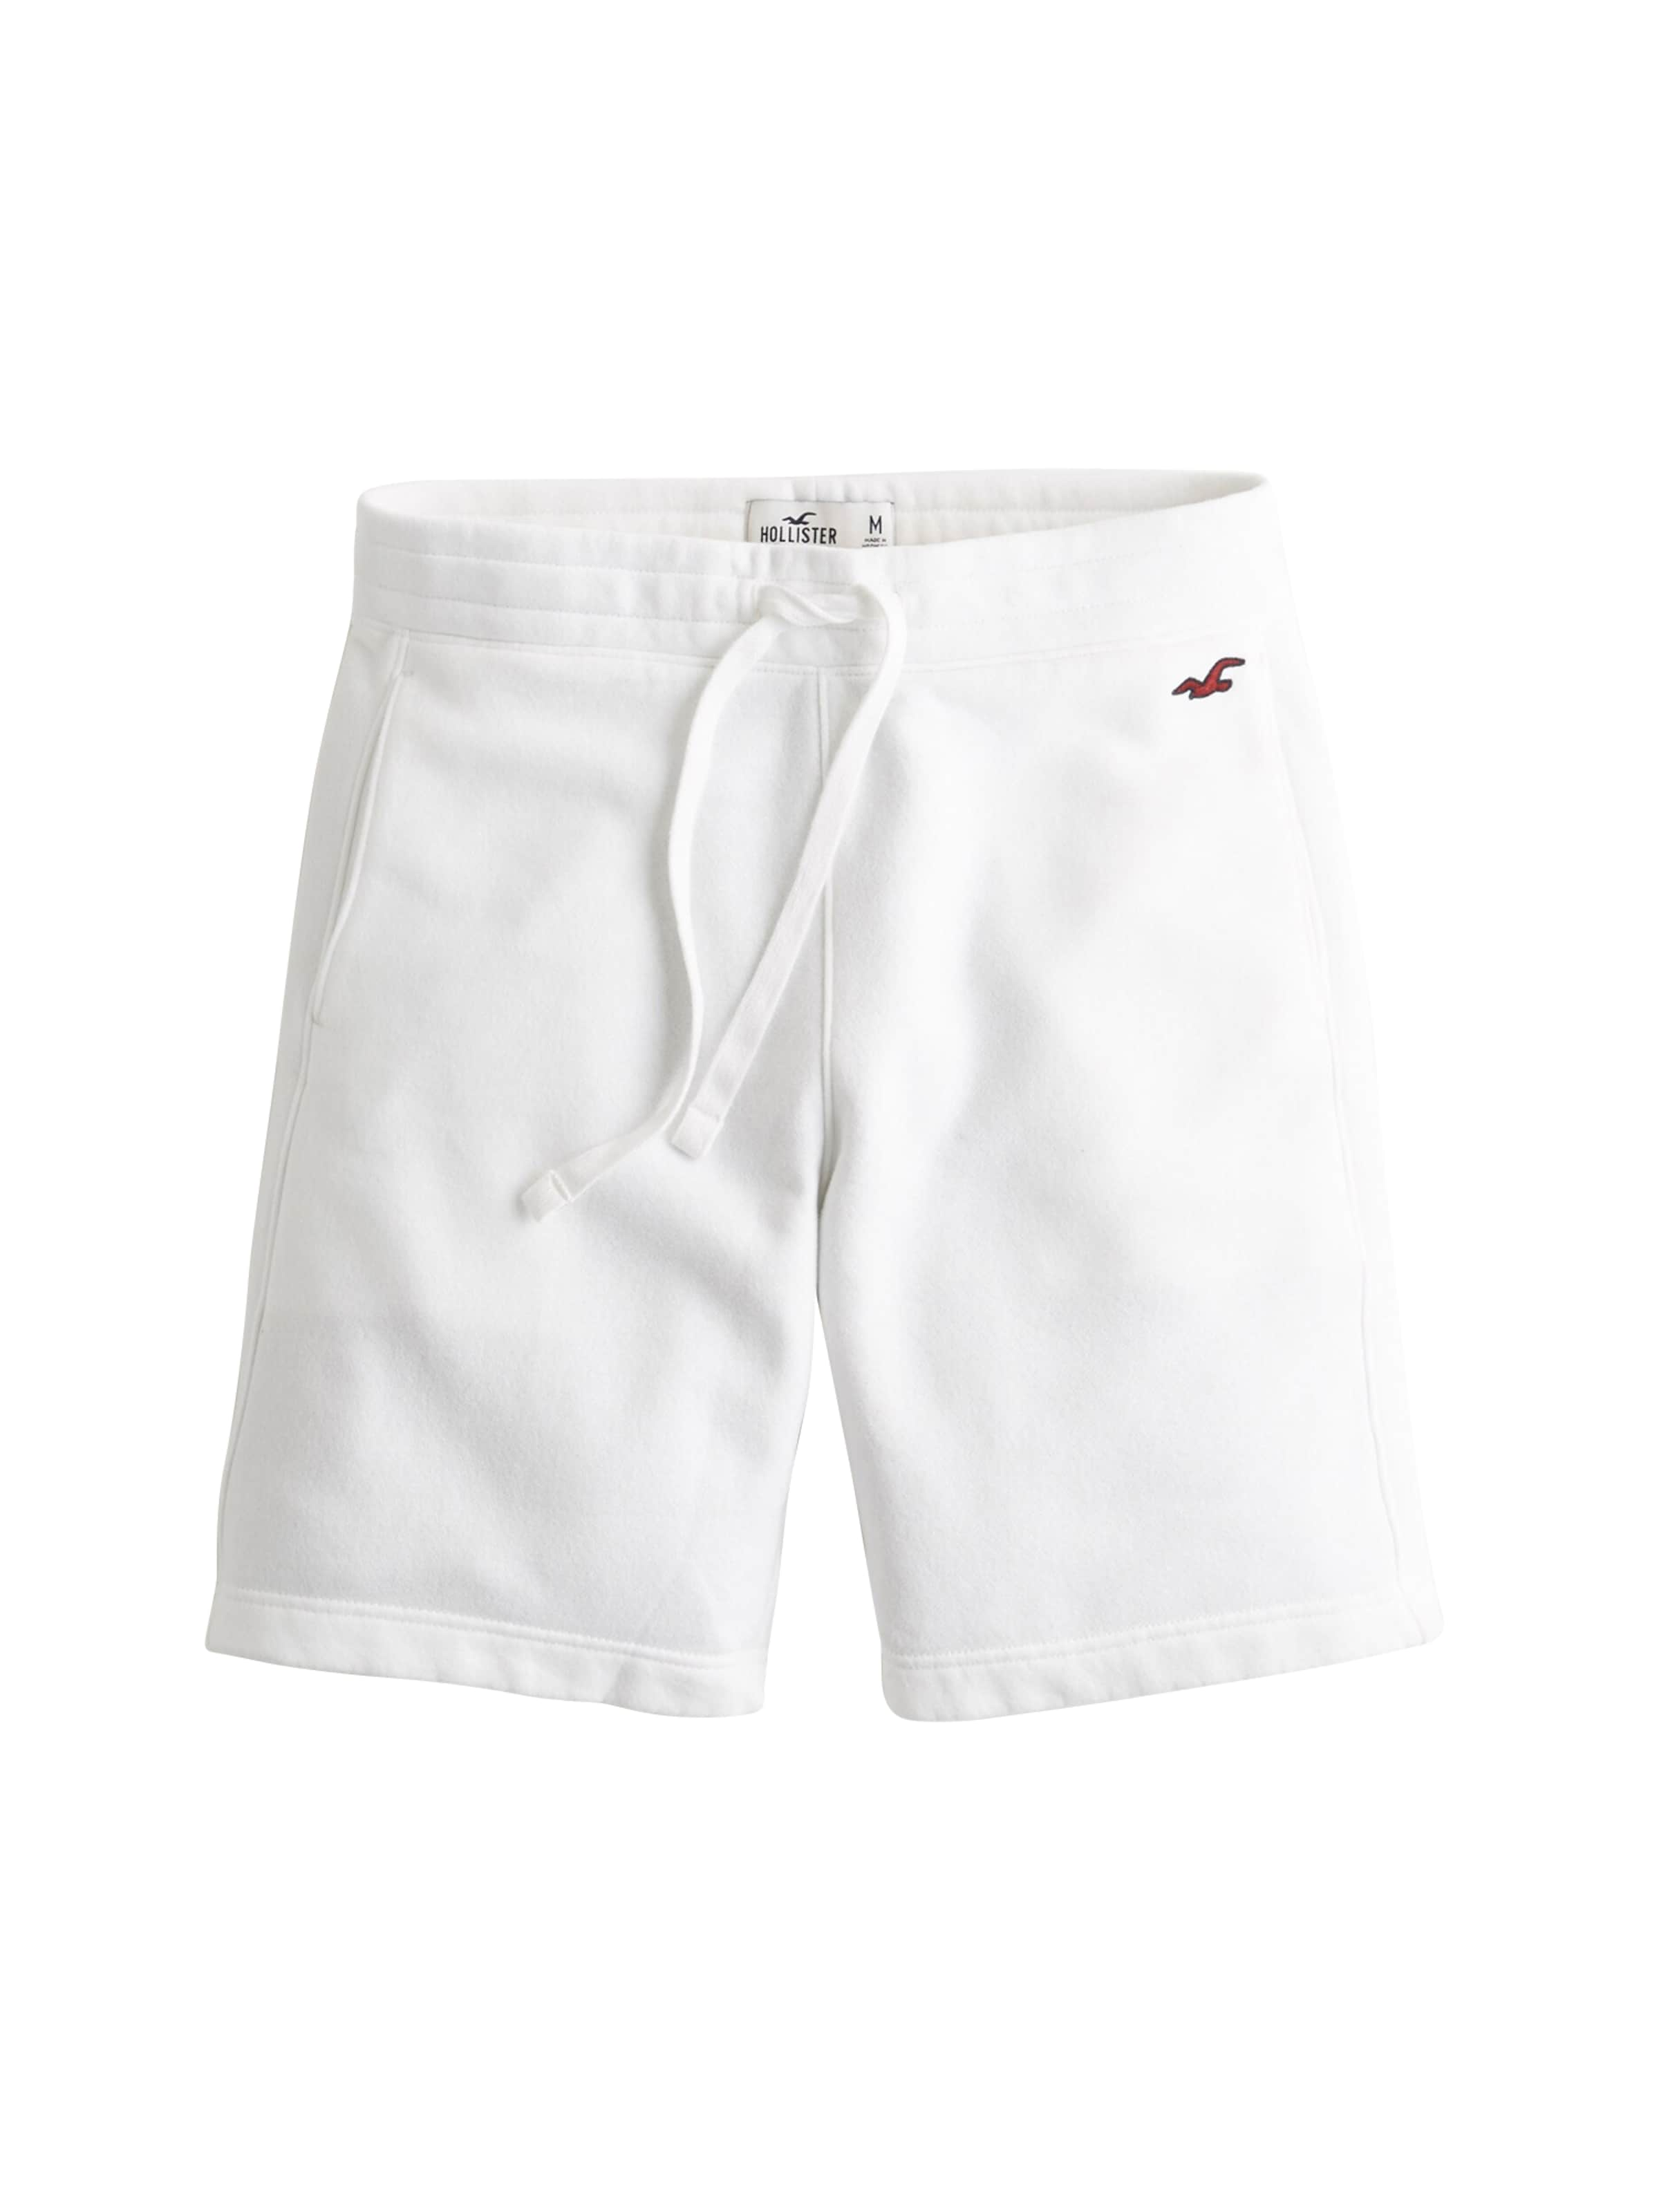 'fit' Weiß Shorts Hollister In 'fit' Shorts In Hollister 'fit' Shorts In Weiß Hollister SUpGzqVLM